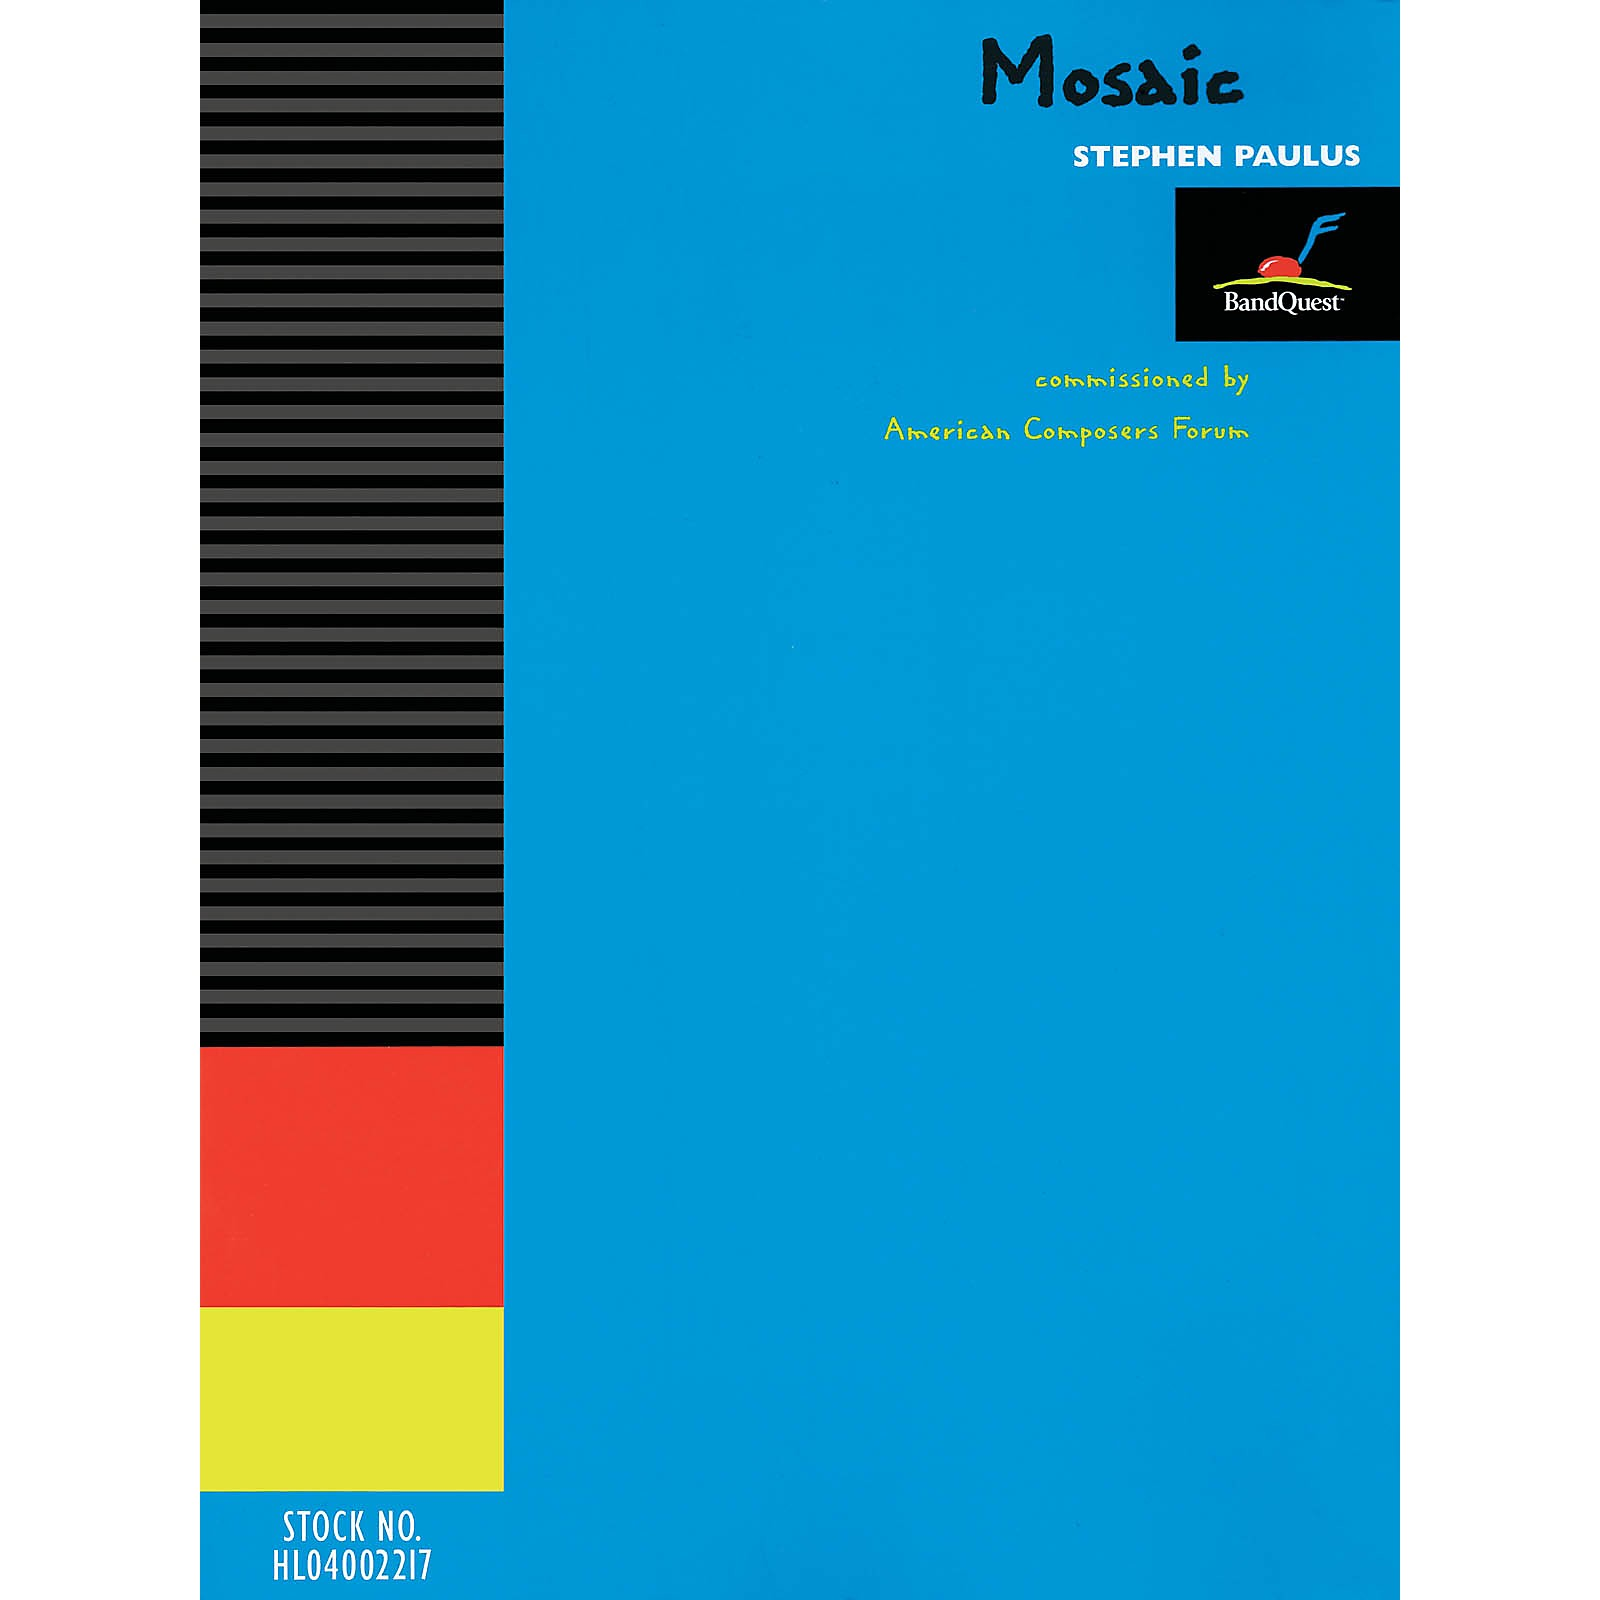 American Composers Forum Mosaic (Score Only) (BandQuest Series Grade 3) Concert Band Level 3 Composed by Stephen Paulus